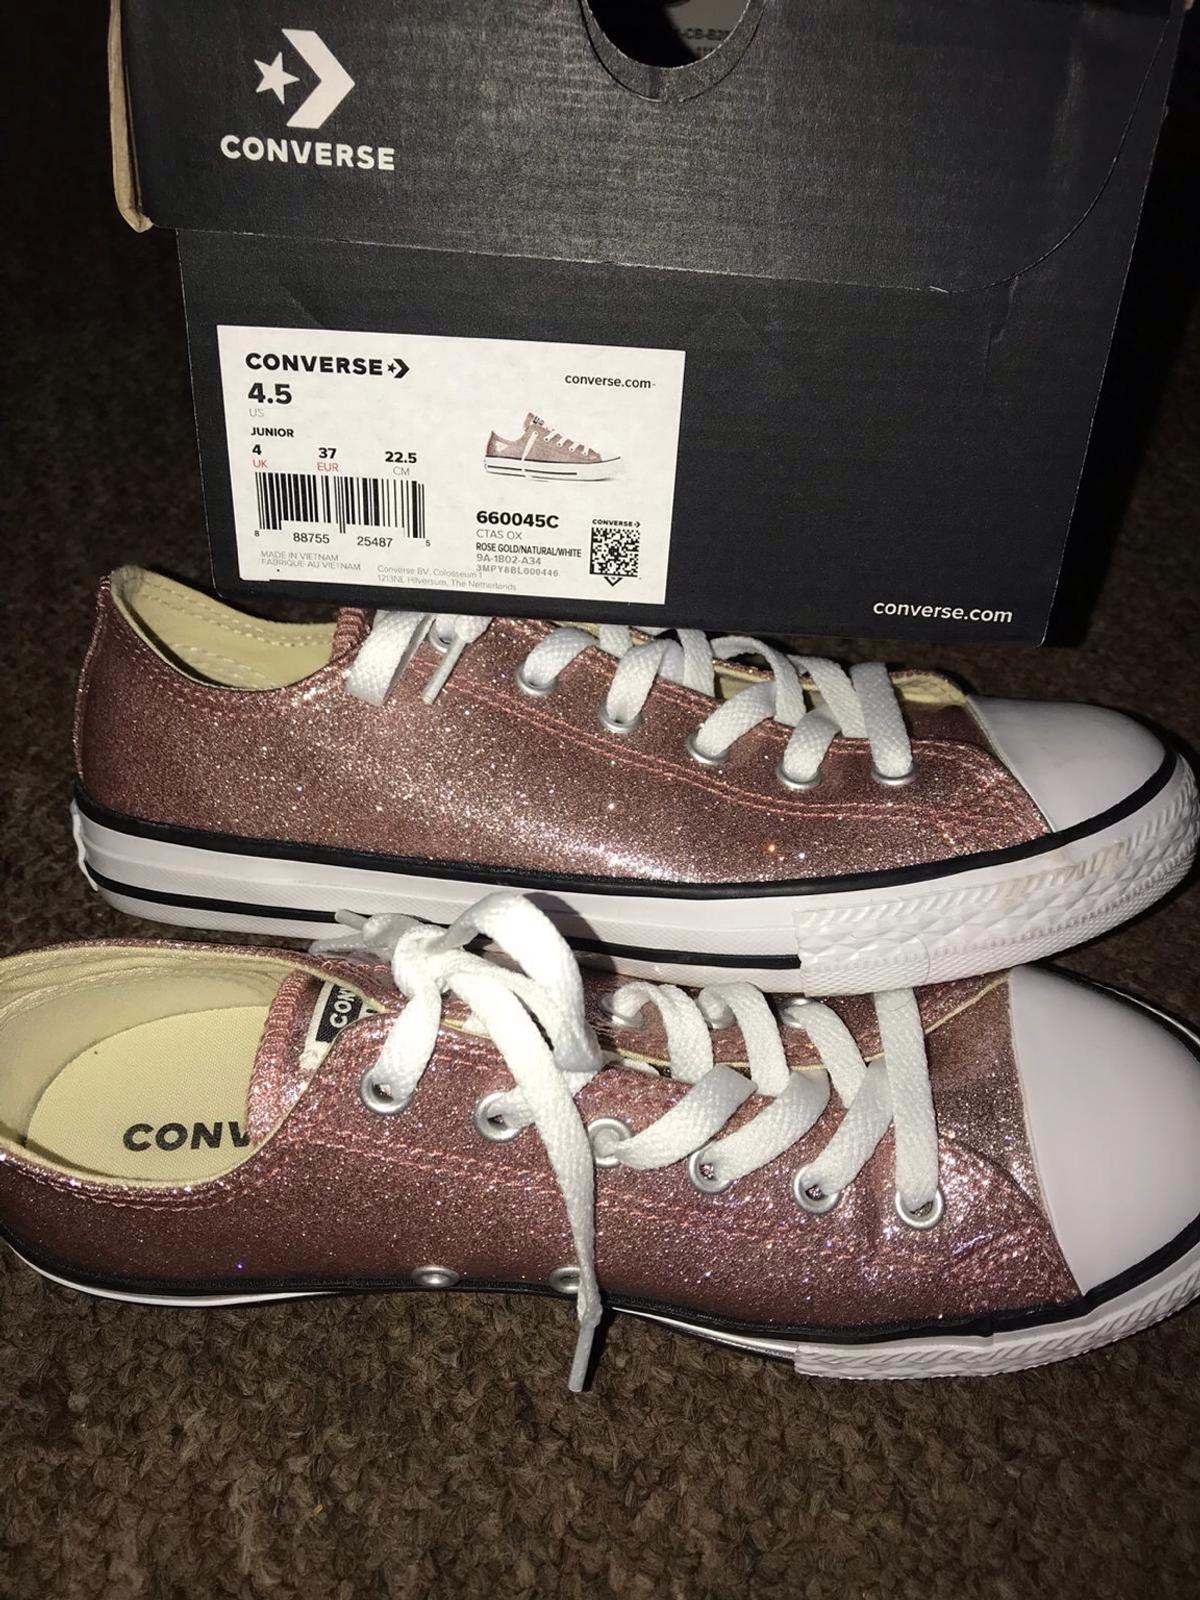 b044099b80183b Women s brand new converse size 4.5 in WS10 Walsall for £15.00 for ...